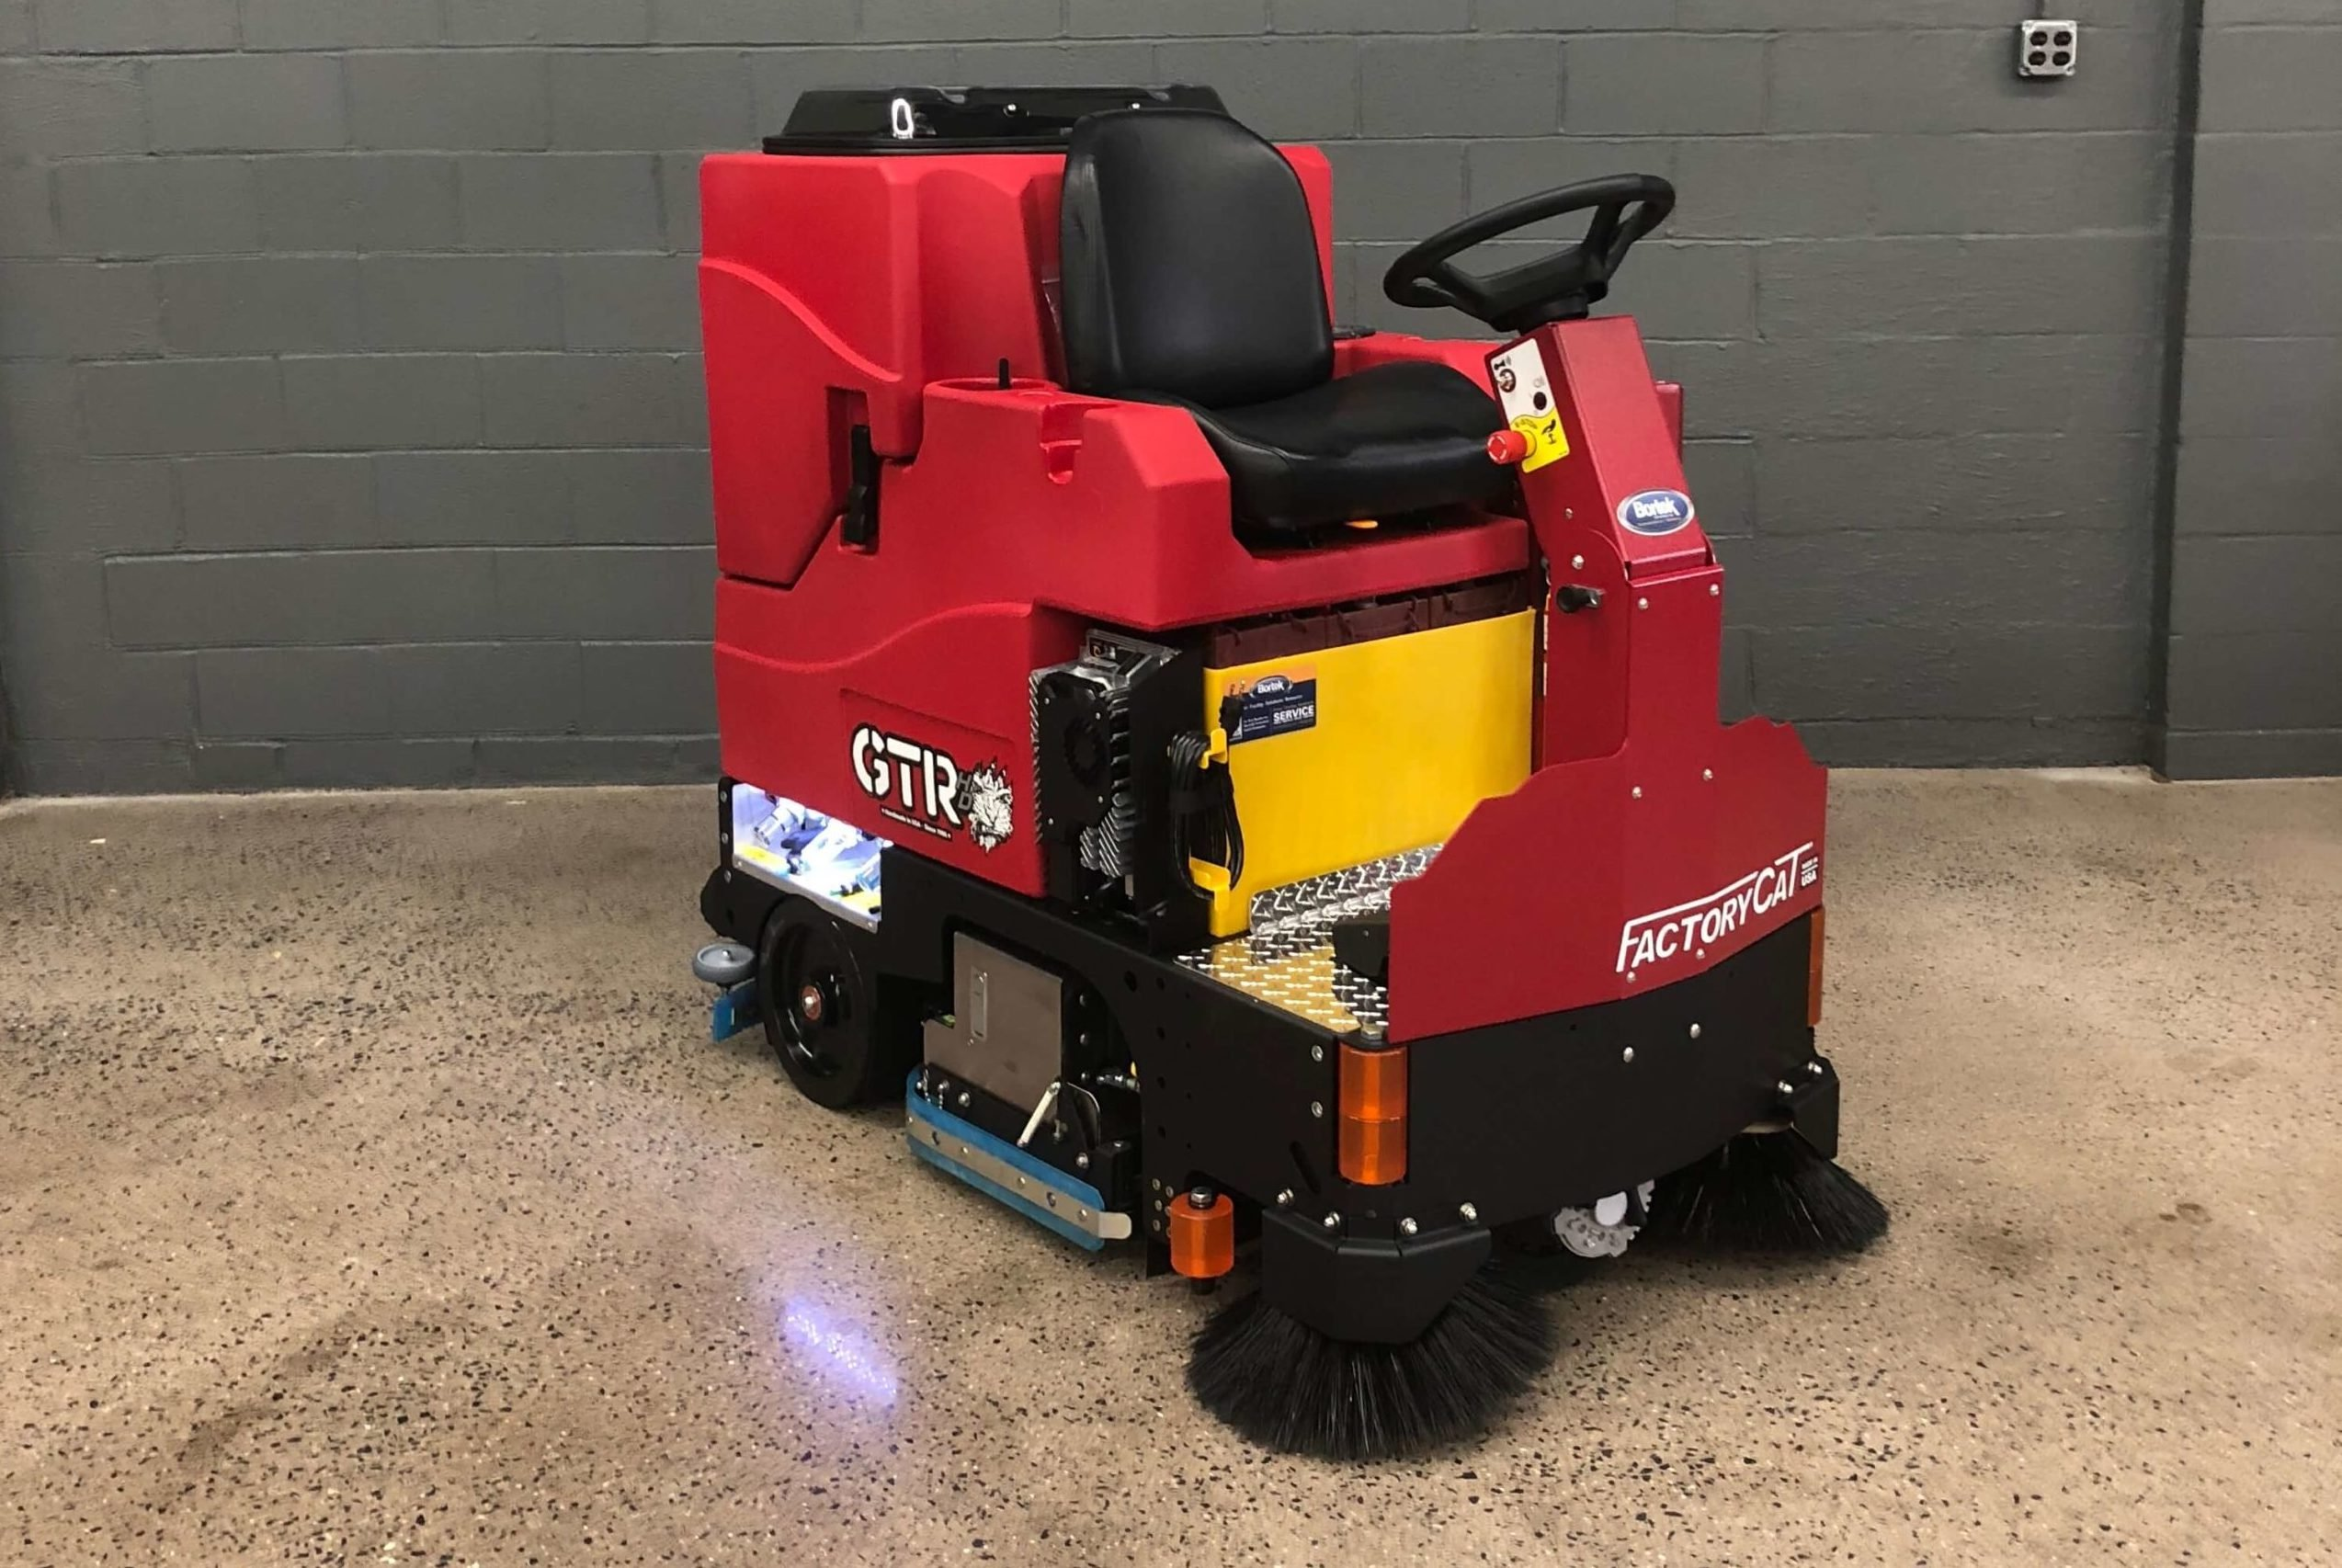 Factory-Cat-GTR-Rider-Floor-Scrubber-Sweeper-FR-Bortek-Industries-Inc-scaled